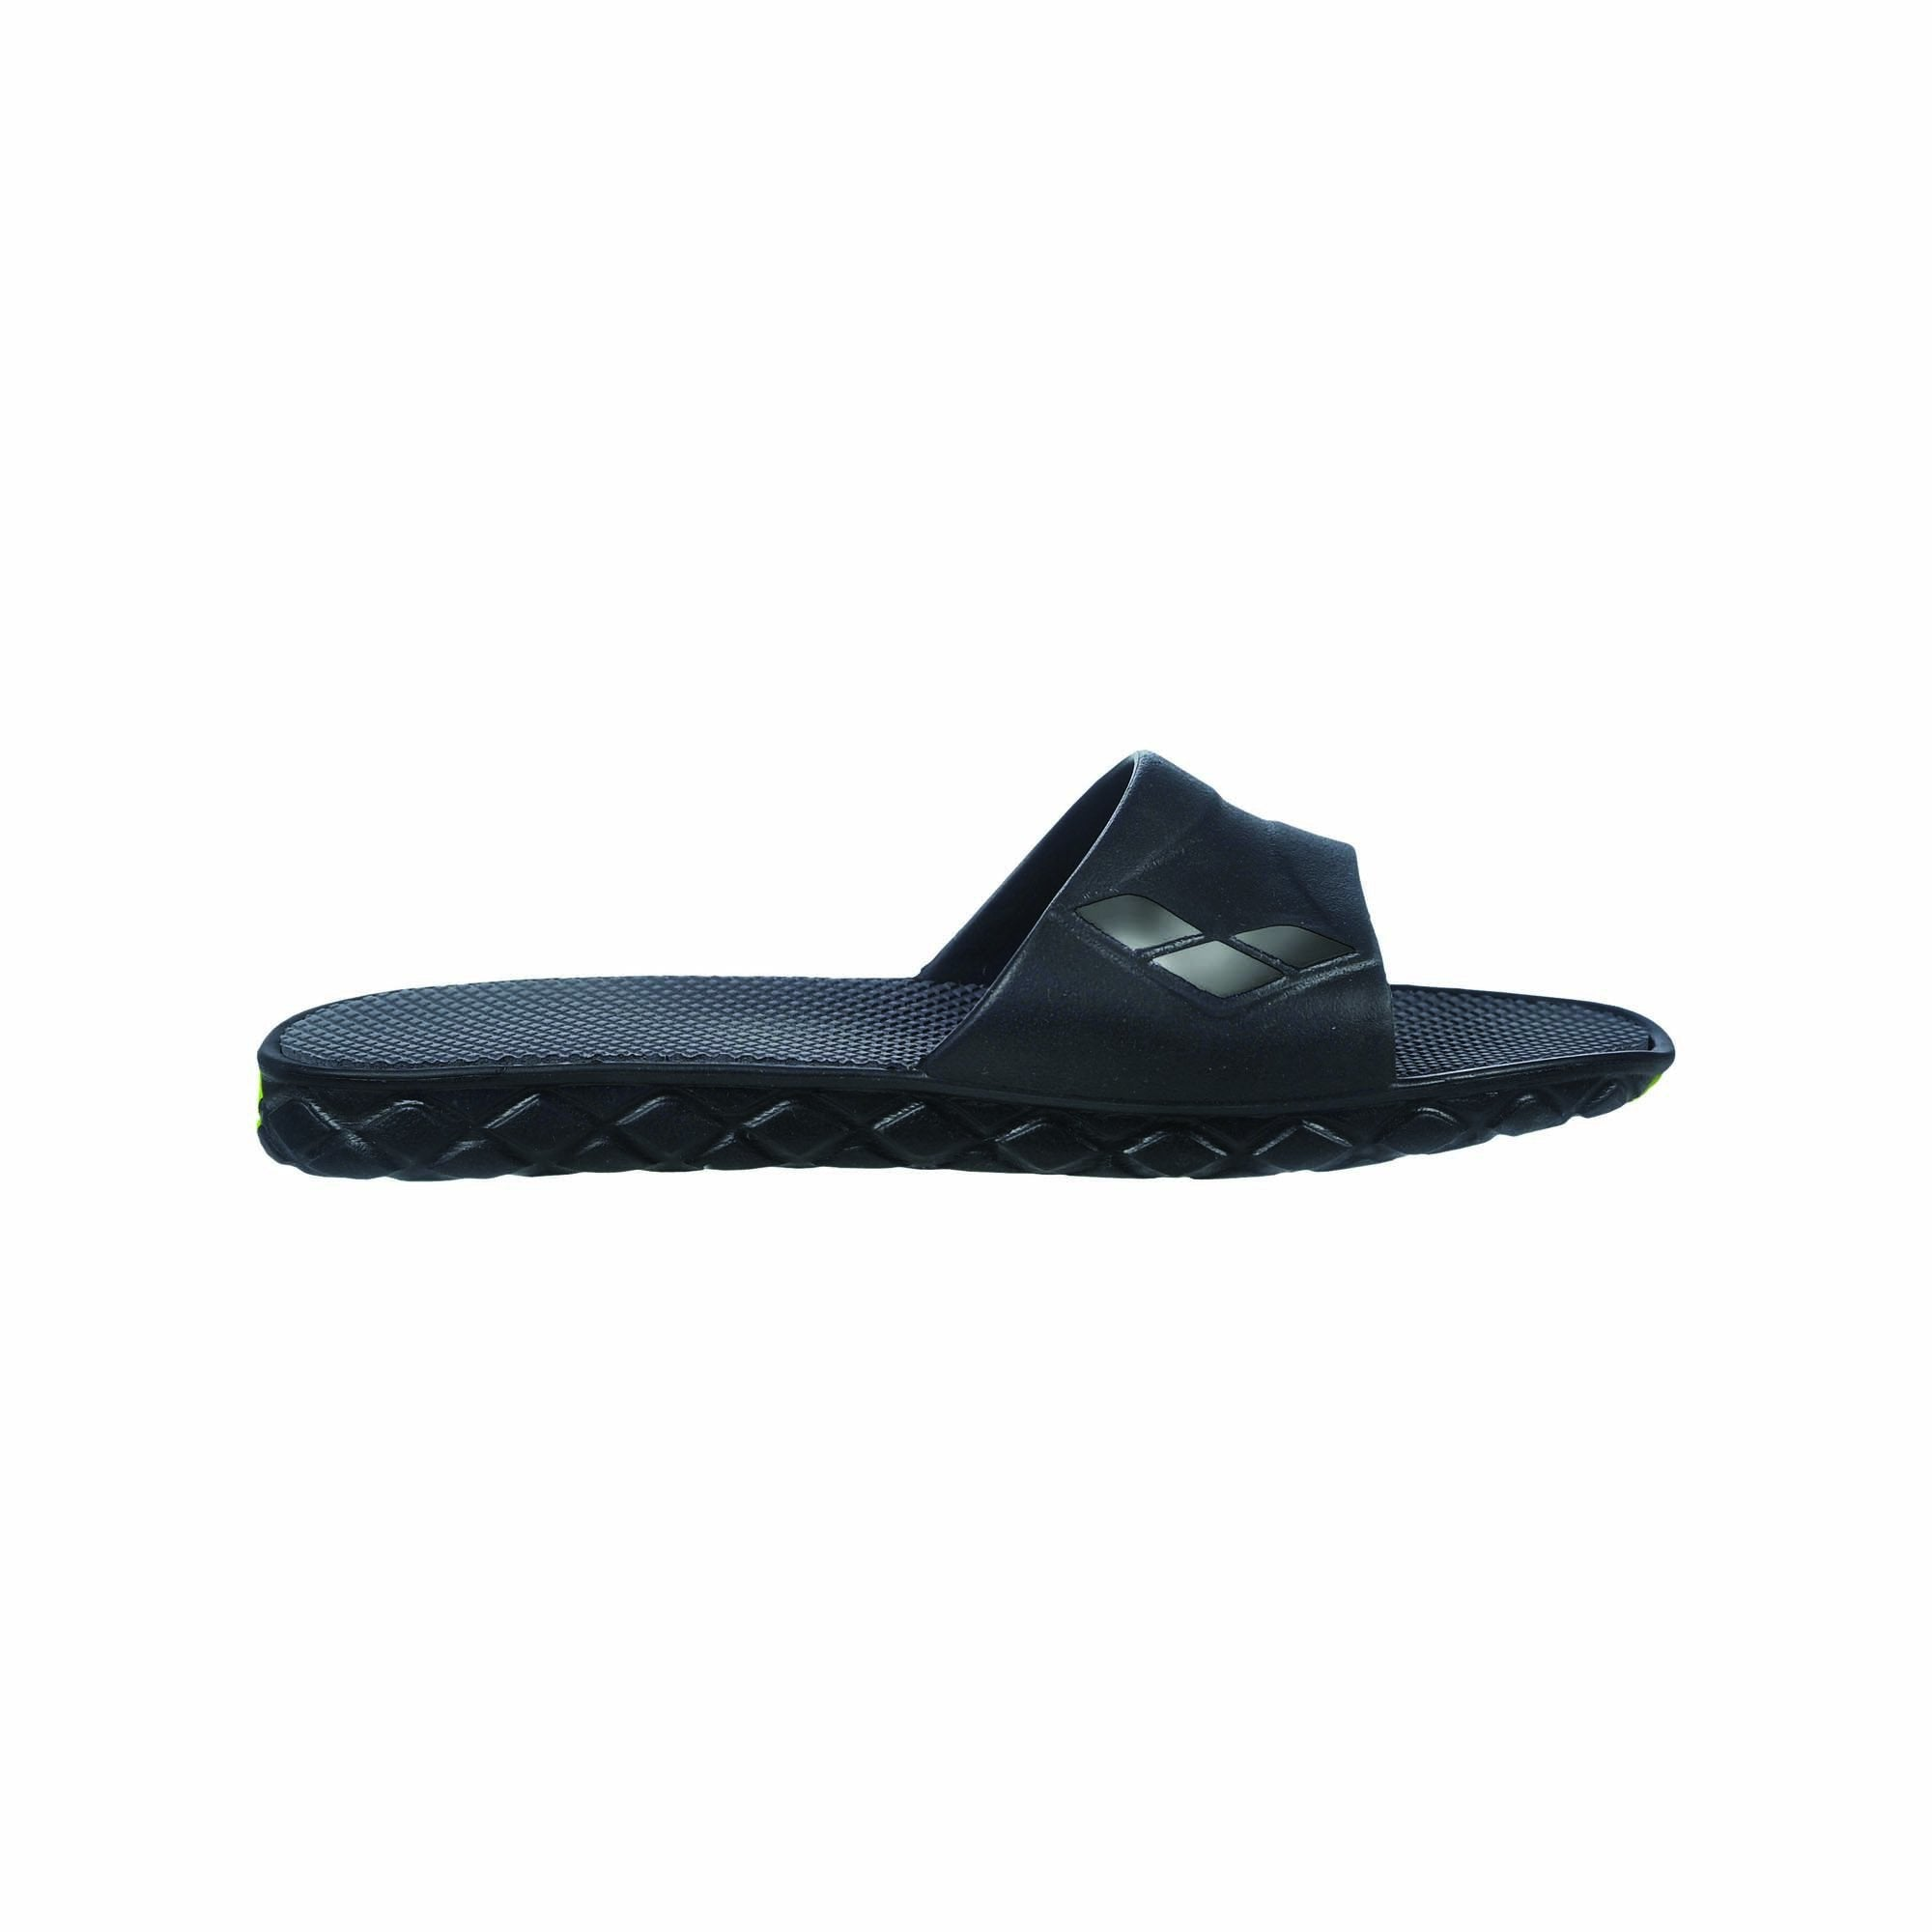 0884b2ed2af1 Arena - Women s Watergrip Slide Sandals - Boutique Step Up